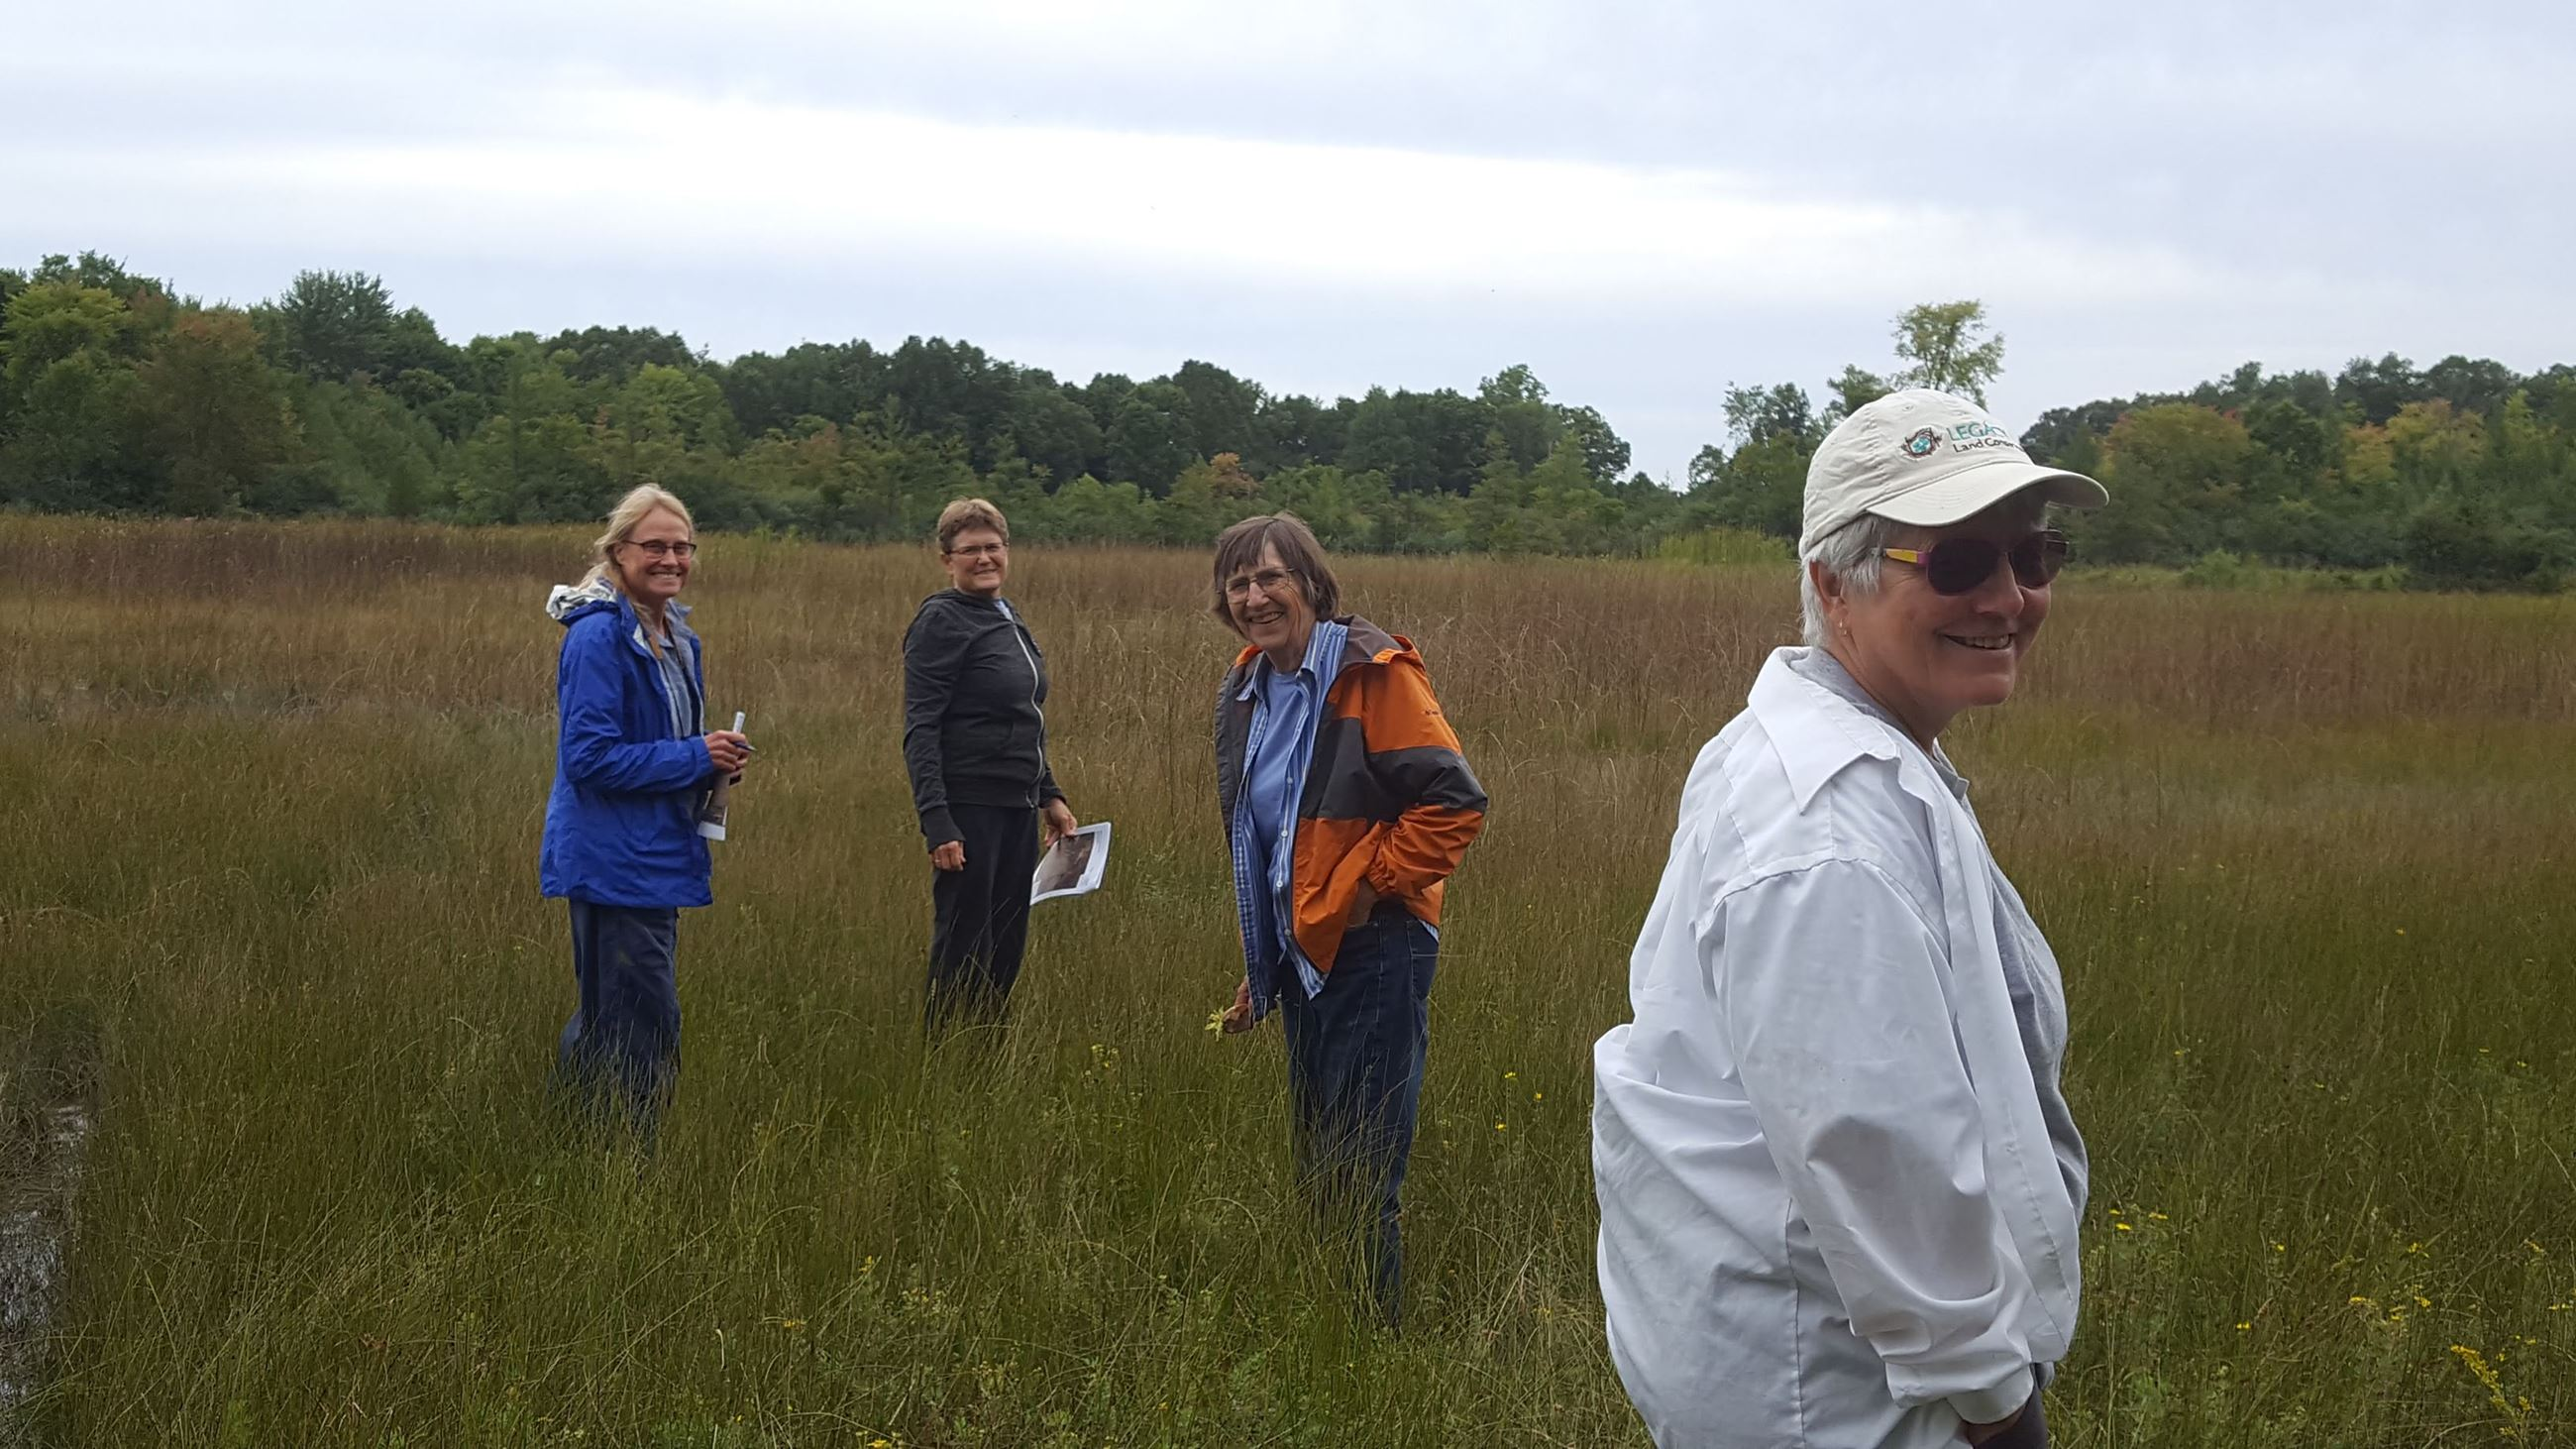 Members of NATAC in a wetland, smiling at the camera Opens in new window